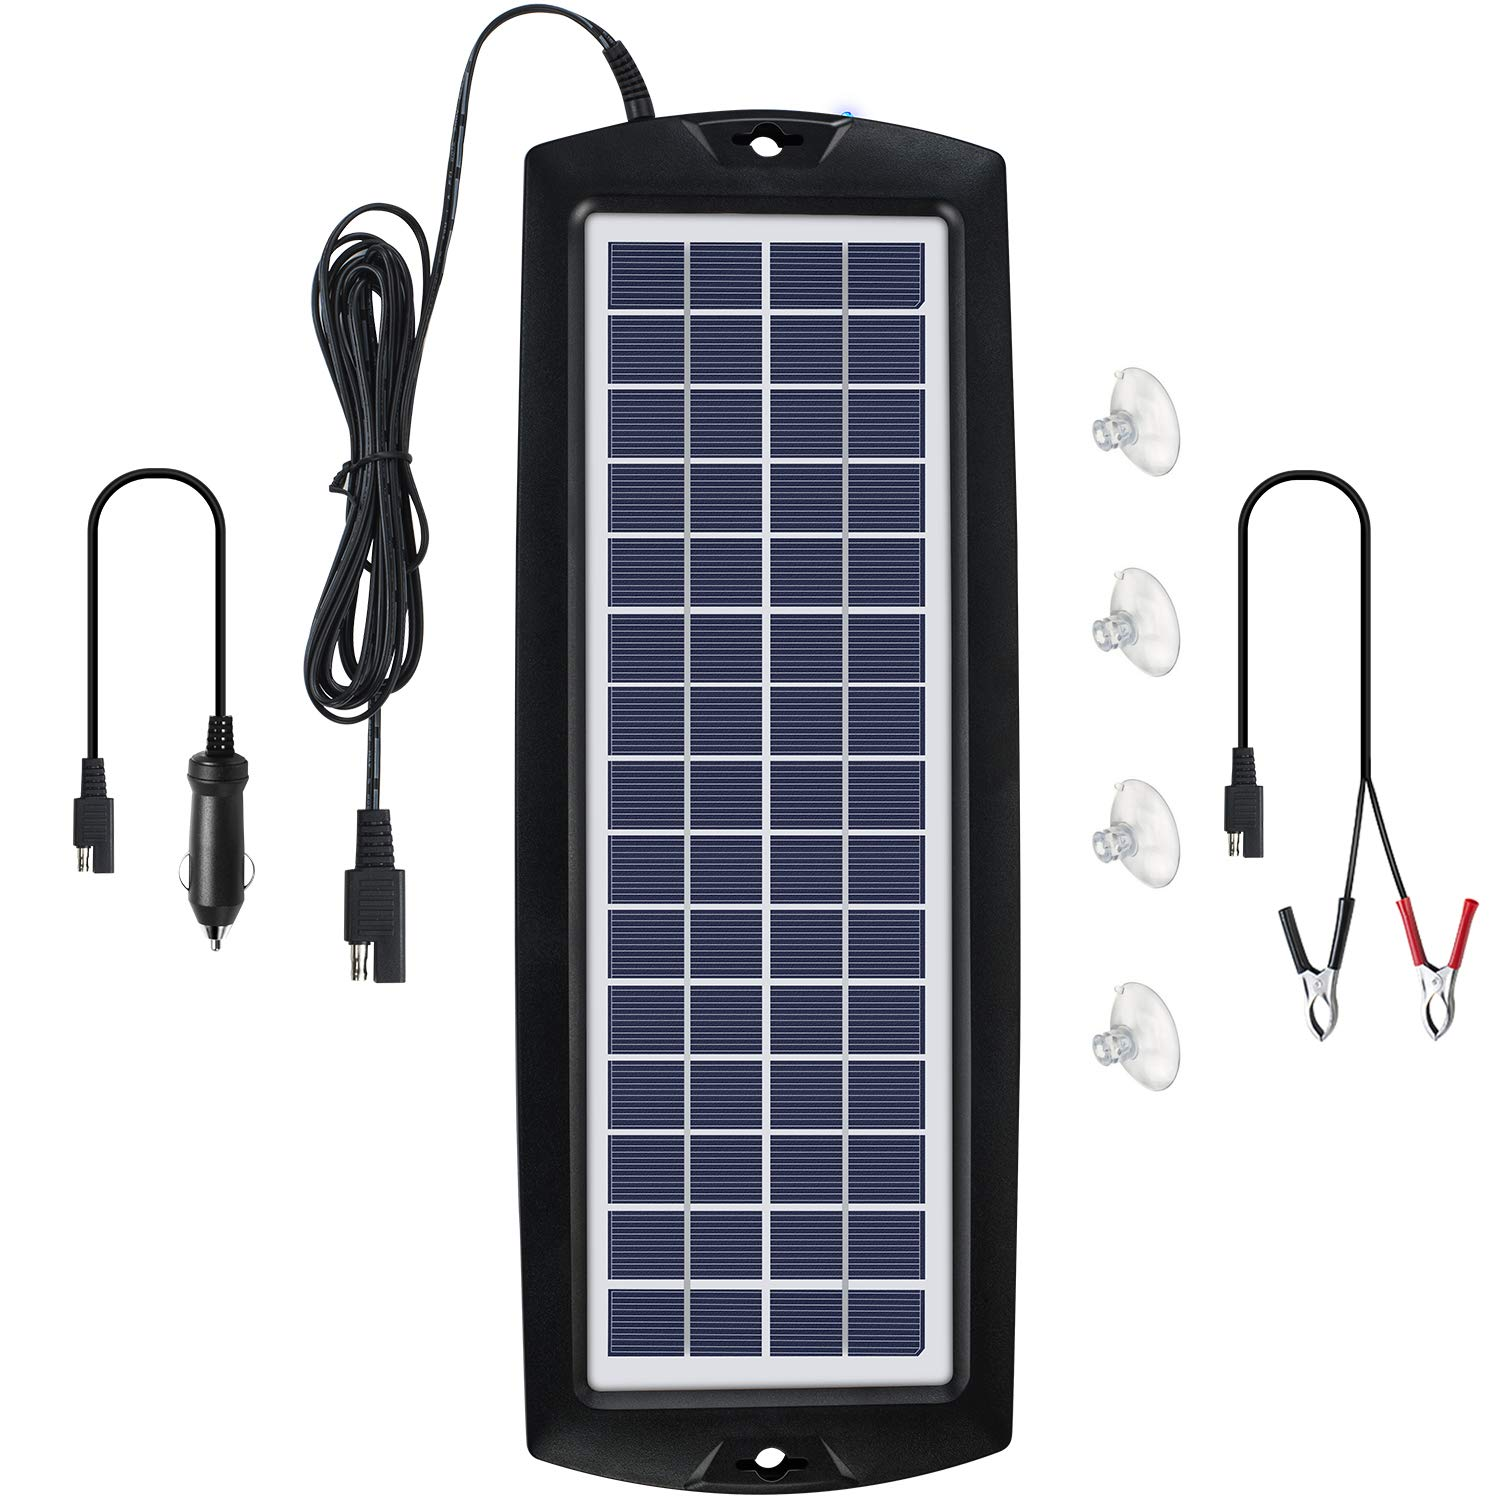 Sunway Solar Car Battery Trickle Charger & Maintainer 12V Solar Panel Power Kit Portable Backup for Car Automotive RV Marine Boat Motorcycle Truck Trailer Tractor Powersports Snowmobile Farm Equipment by Sunway Solar